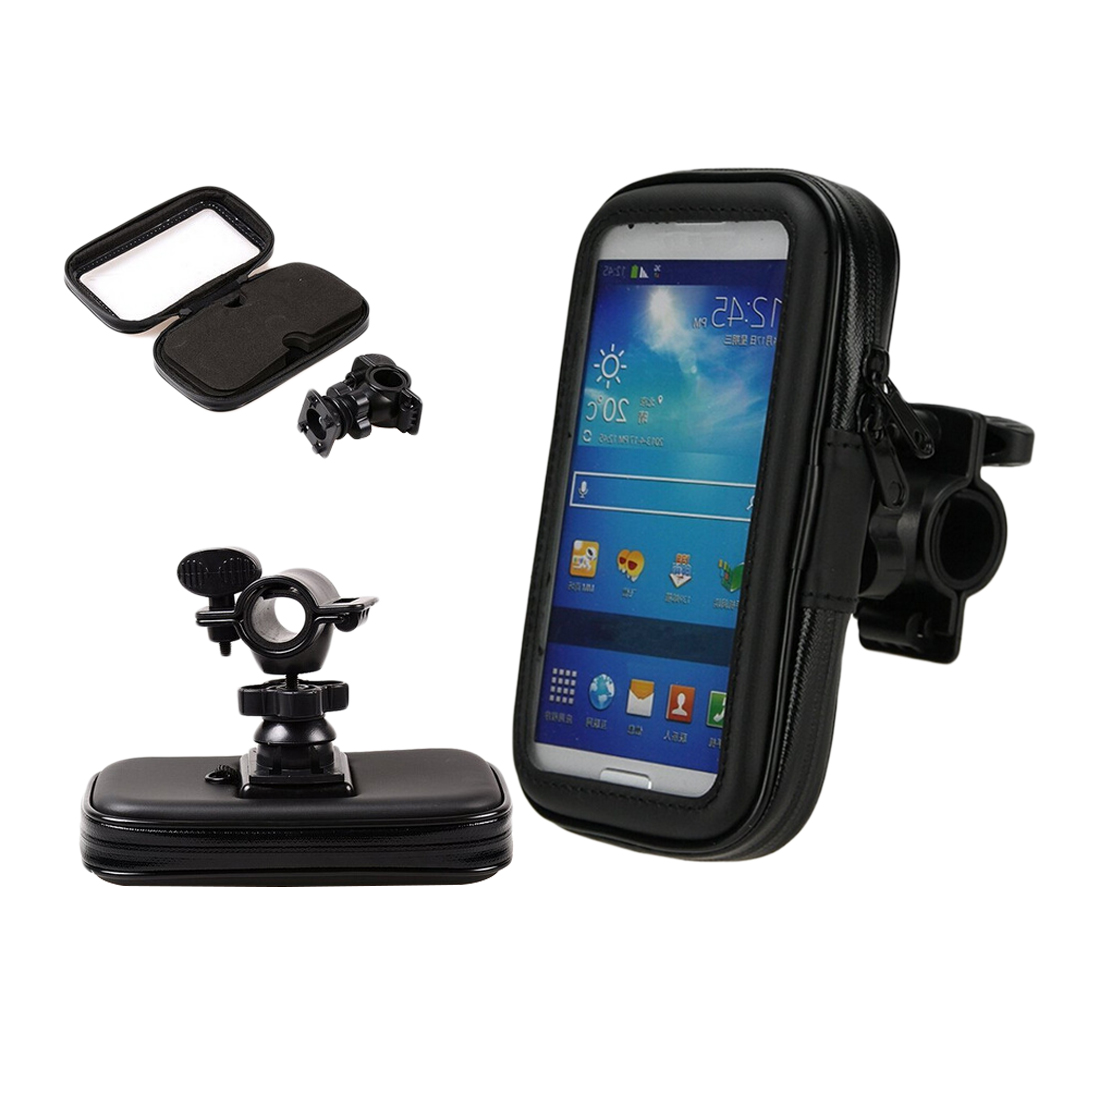 Dewtreetali Motorcycle Phone Holder For Samsung Galaxy S7 S6 Edge S8 G530 A5 A7 J5 J3 Support Mobile holder Stand Waterproof